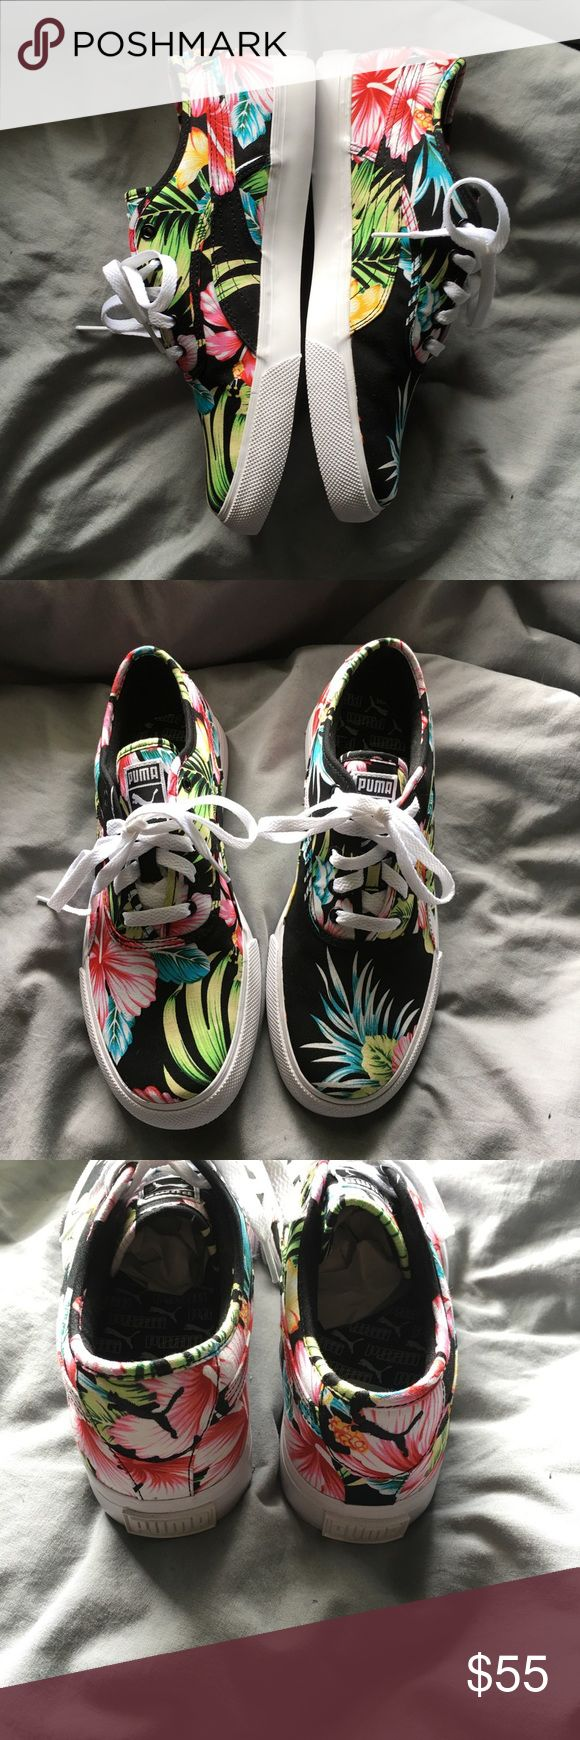 Puma floral shoes NWT puma floral shoes. Black with very colorful floral. Men's size 7 1/2. Euro 40. Women's 10 with box Puma Shoes Sneakers